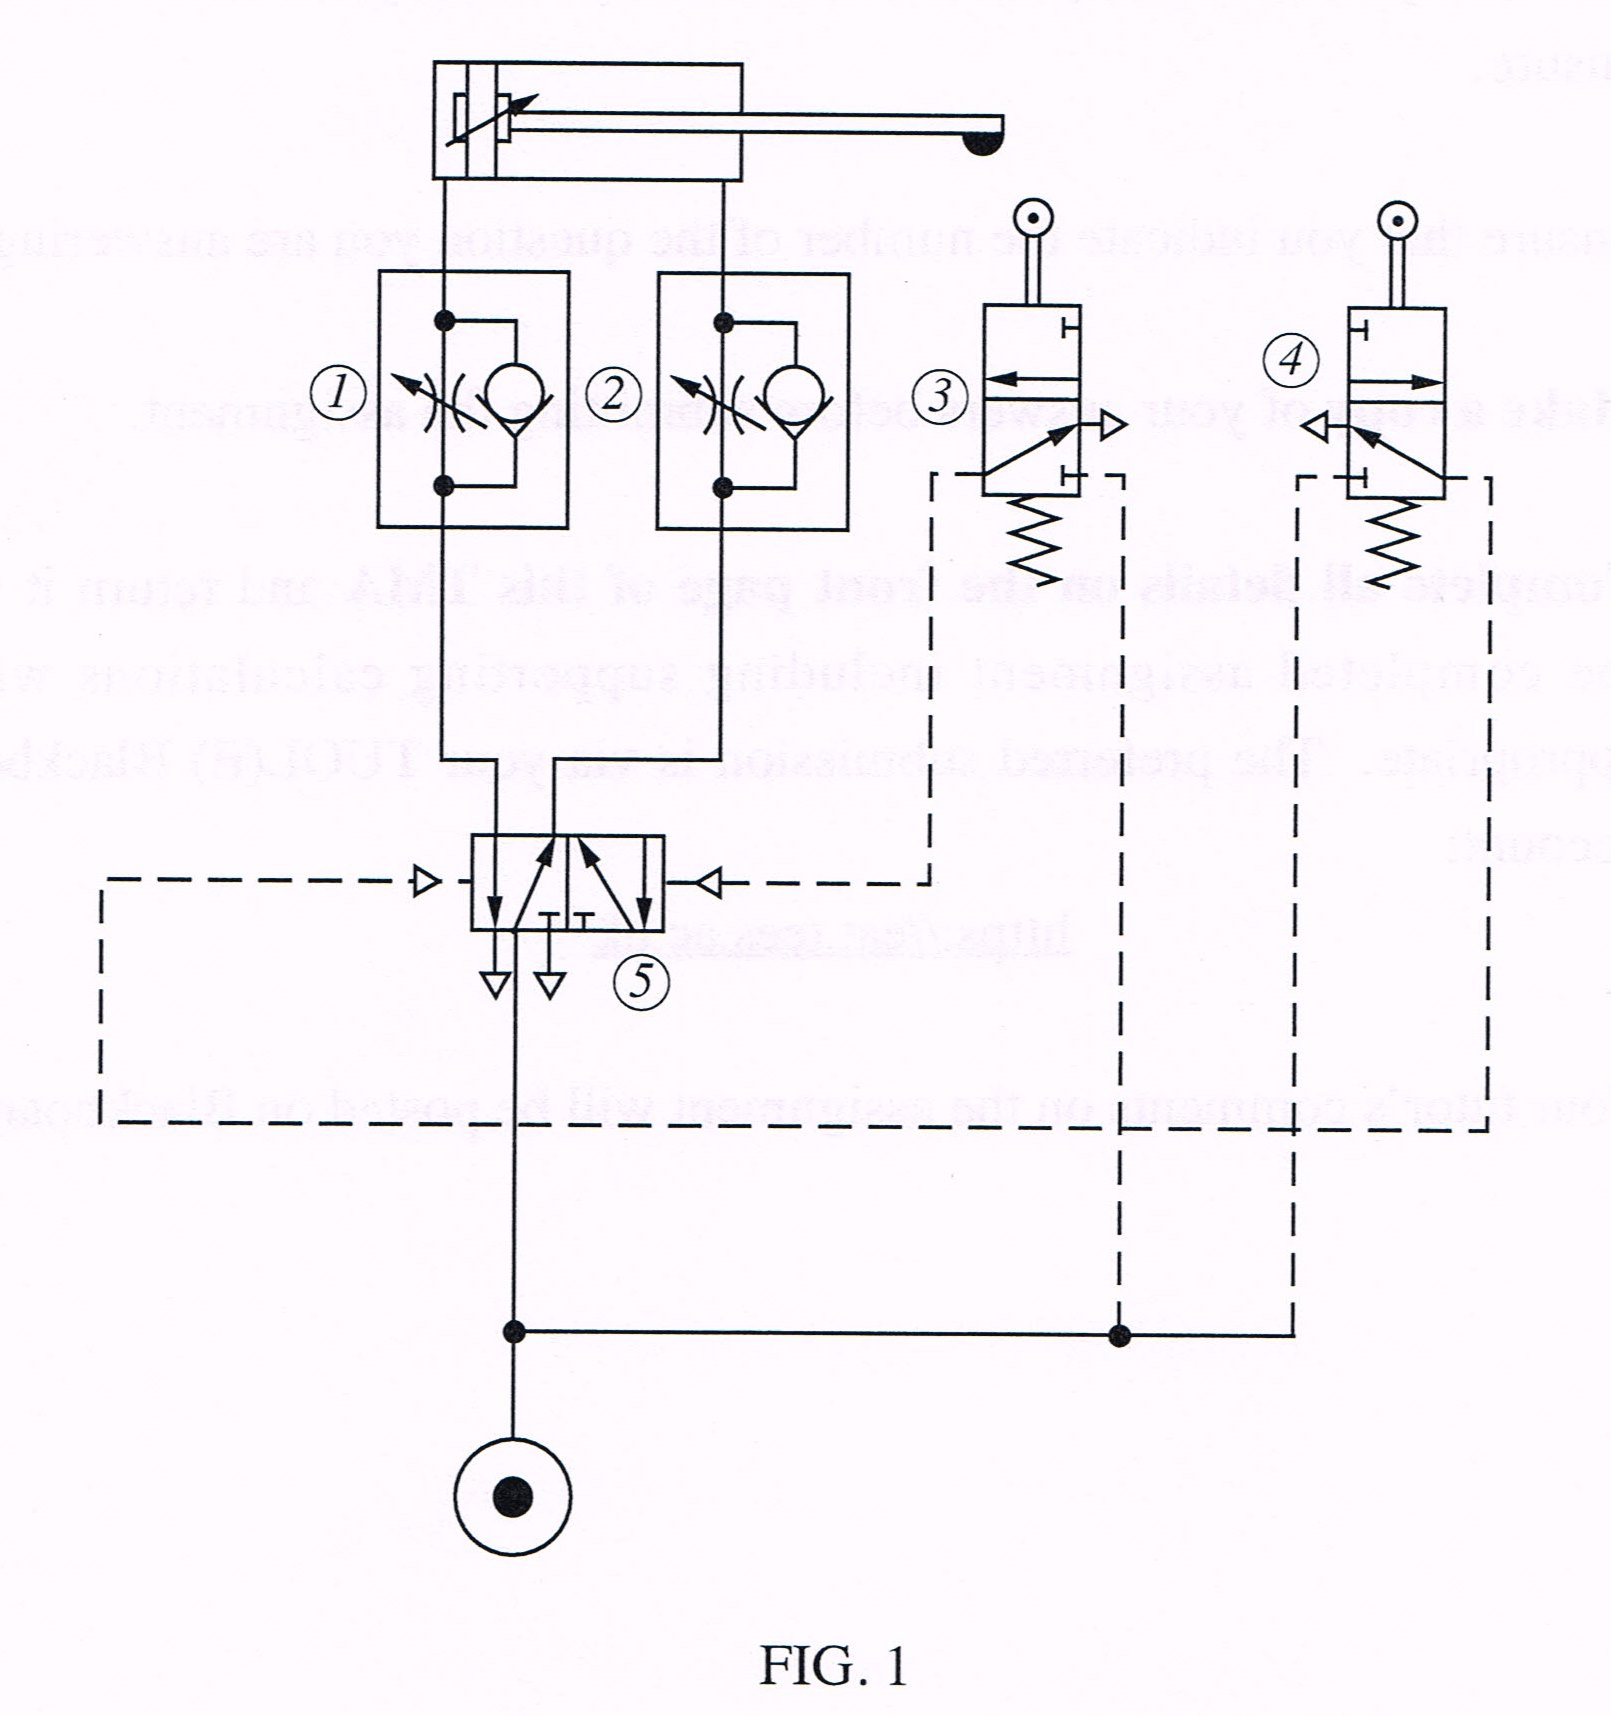 Wrg Pneumatics Wiring Diagram With Actuators